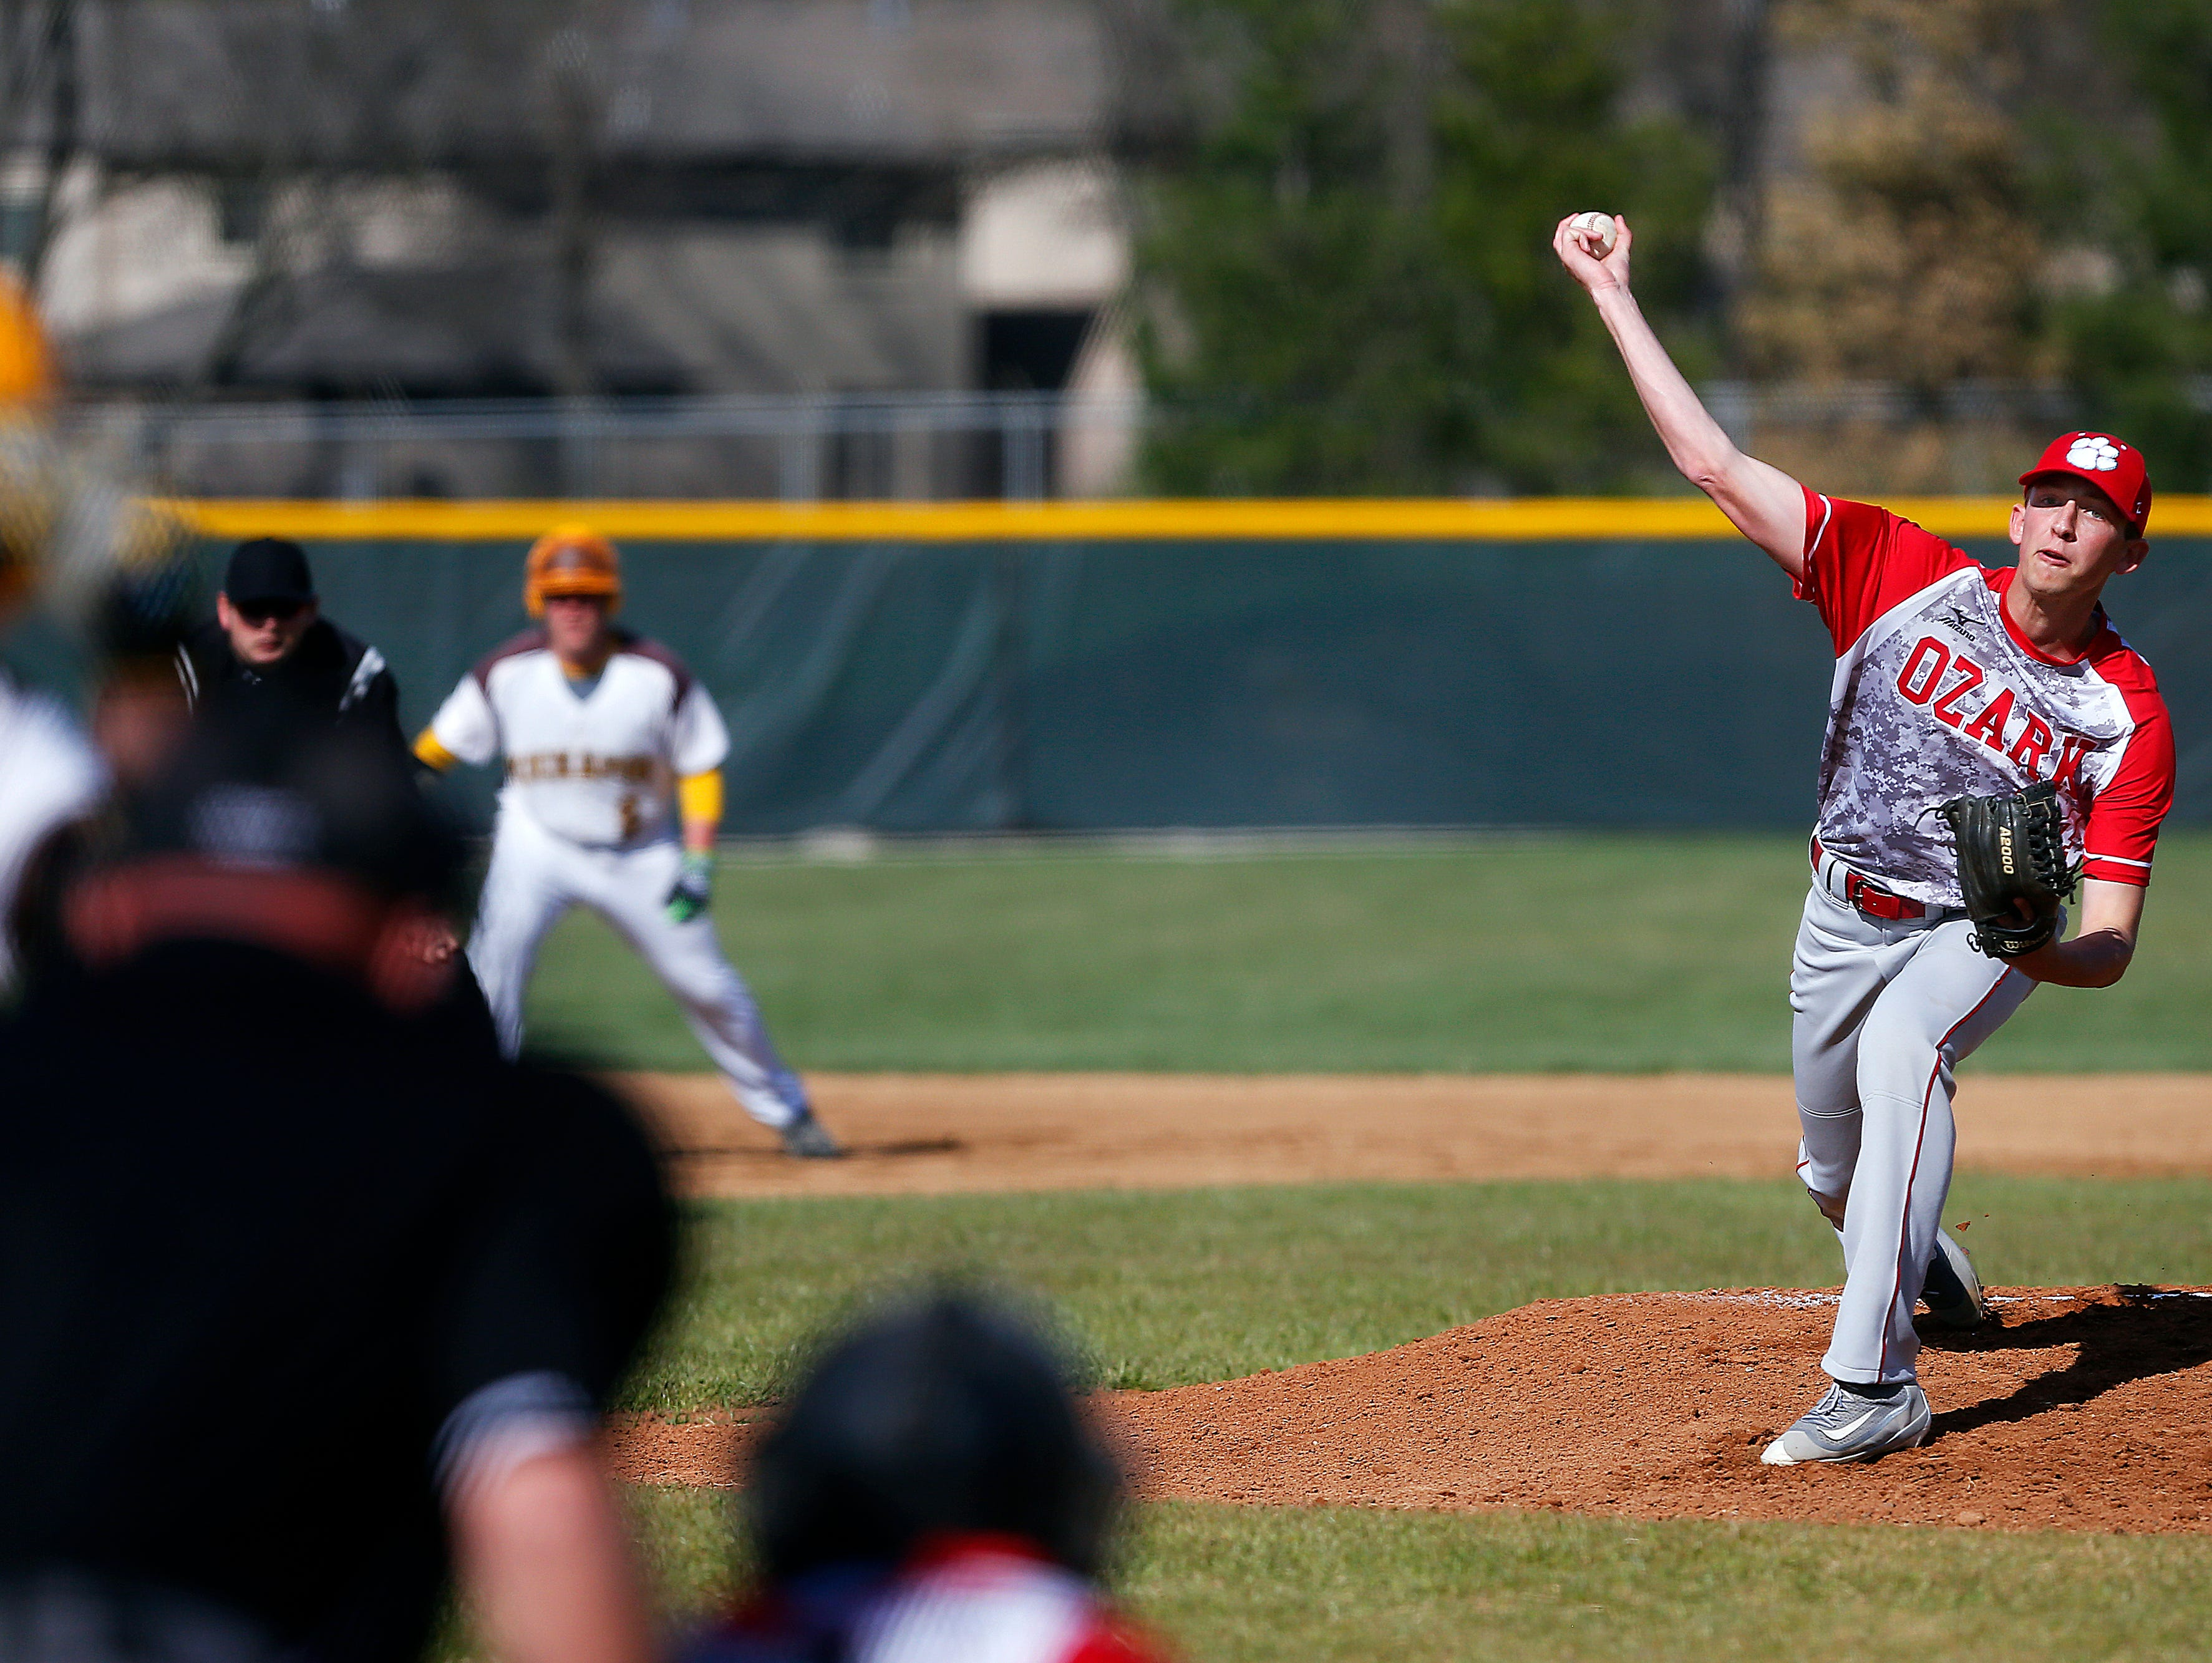 Ozark High School pitcher Tanner Wallace (34) pitches during first inning action of the high school baseball game between Kickapoo and Ozark at Kickapoo High School in Springfield, Mo. on March 29, 2016.